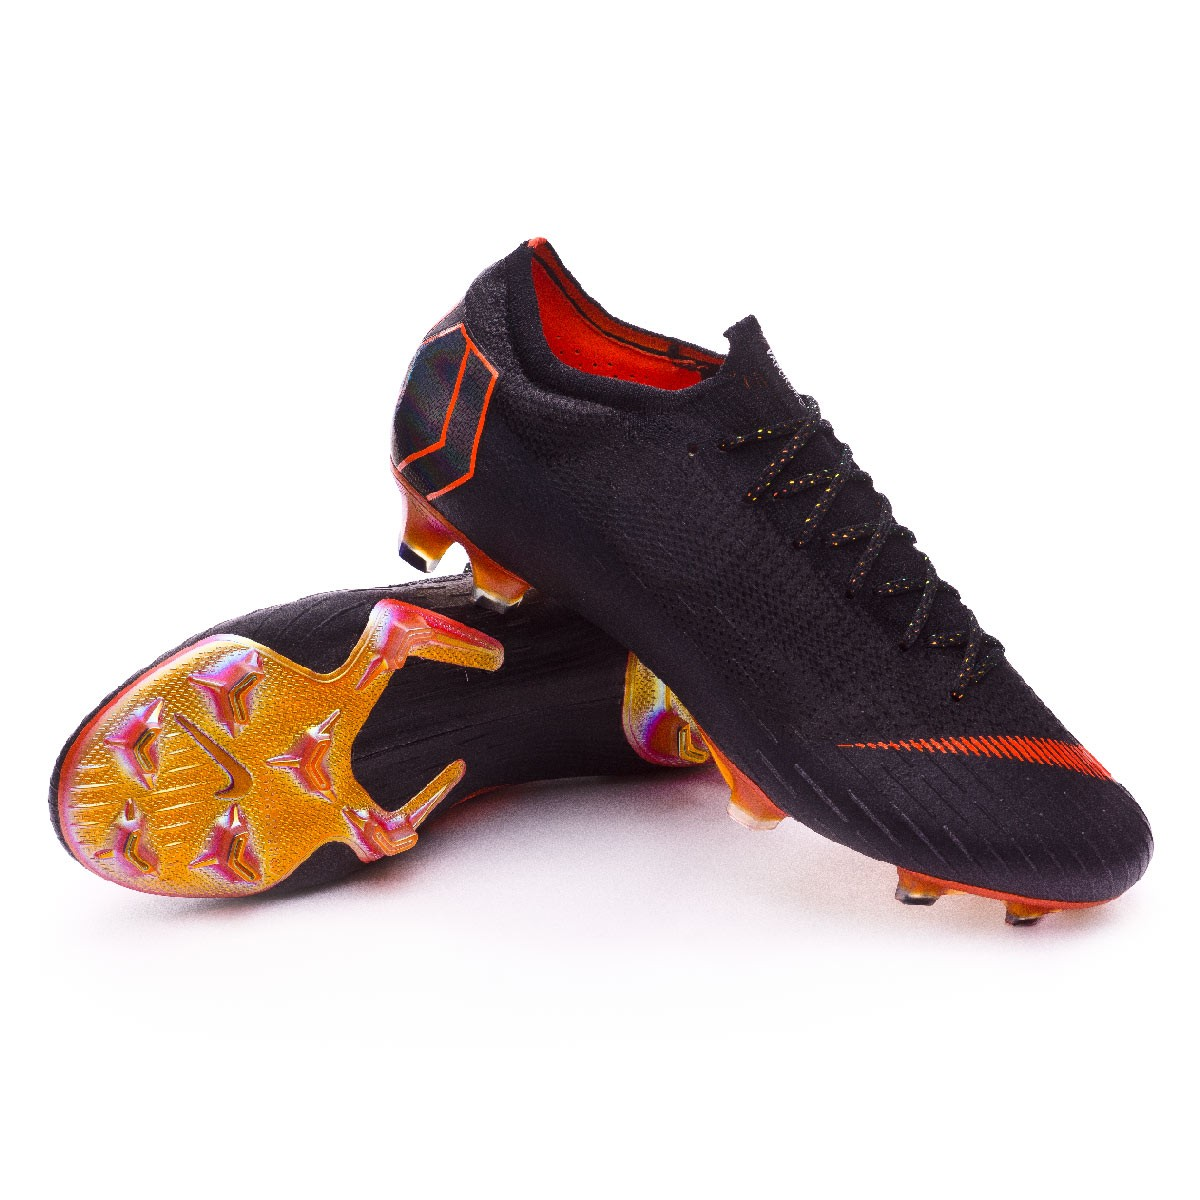 ... Bota Mercurial Vapor XII Elite FG Black-Total orange-White. CATEGORY